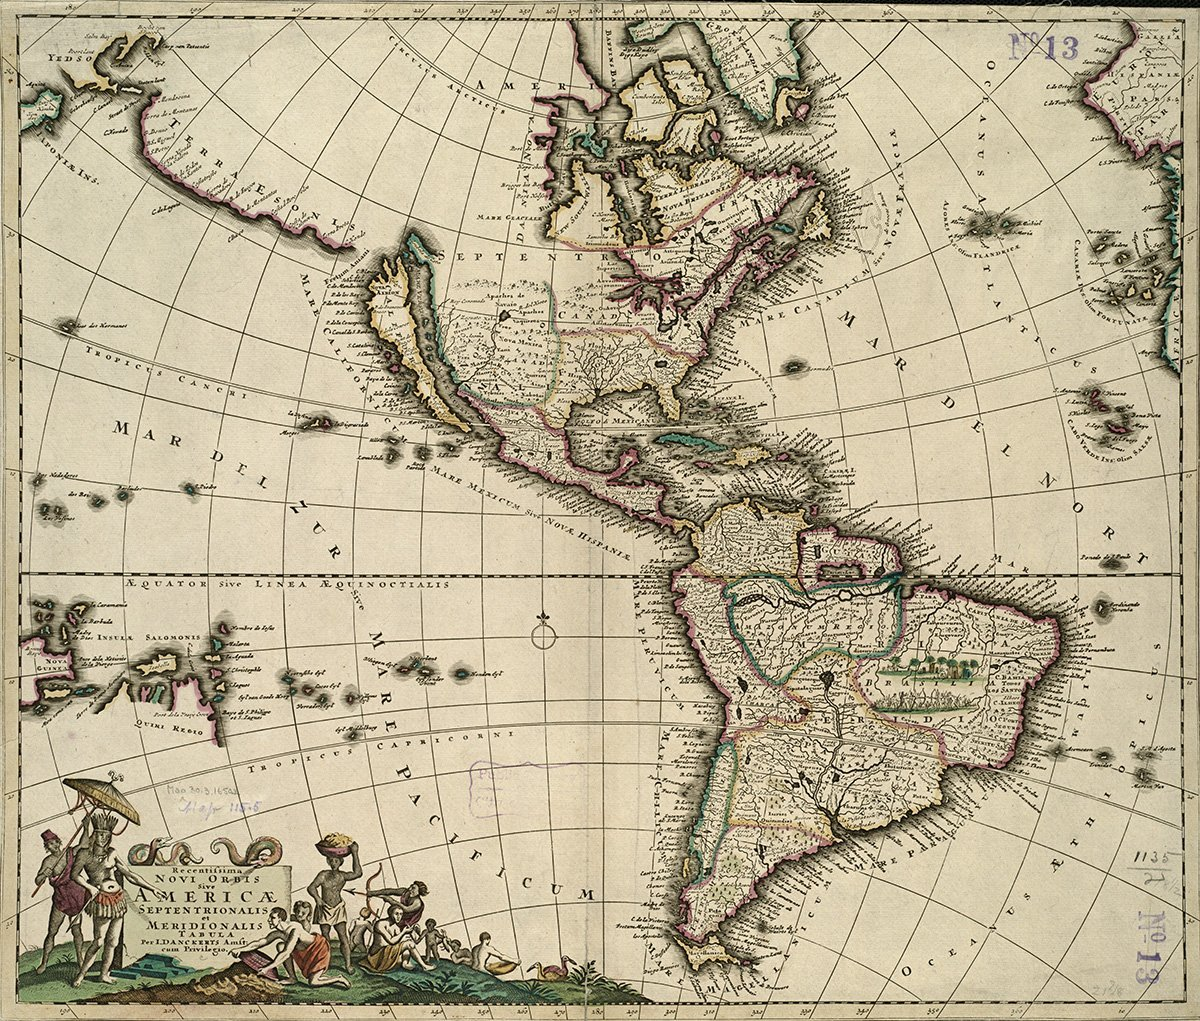 Amazon.com: Ancient map of the American continent, Canvas ... on atlantic ocean, map of chile, voyages of christopher columbus, map of electromagnetic spectrum, map of america, map of american tribe, map of mexico, western hemisphere, map of american country, map of american states, map of ecuador, map of new madrid fault zone, central america continent, pacific ocean, native americans in the united states, christopher columbus, map of american culture, map of american colony, map of colombia, map of florida, map of american race, map of american history, united states of america, indigenous peoples of the americas, south america continent, map of american english, history of the americas, map of american plateau, map of europe,